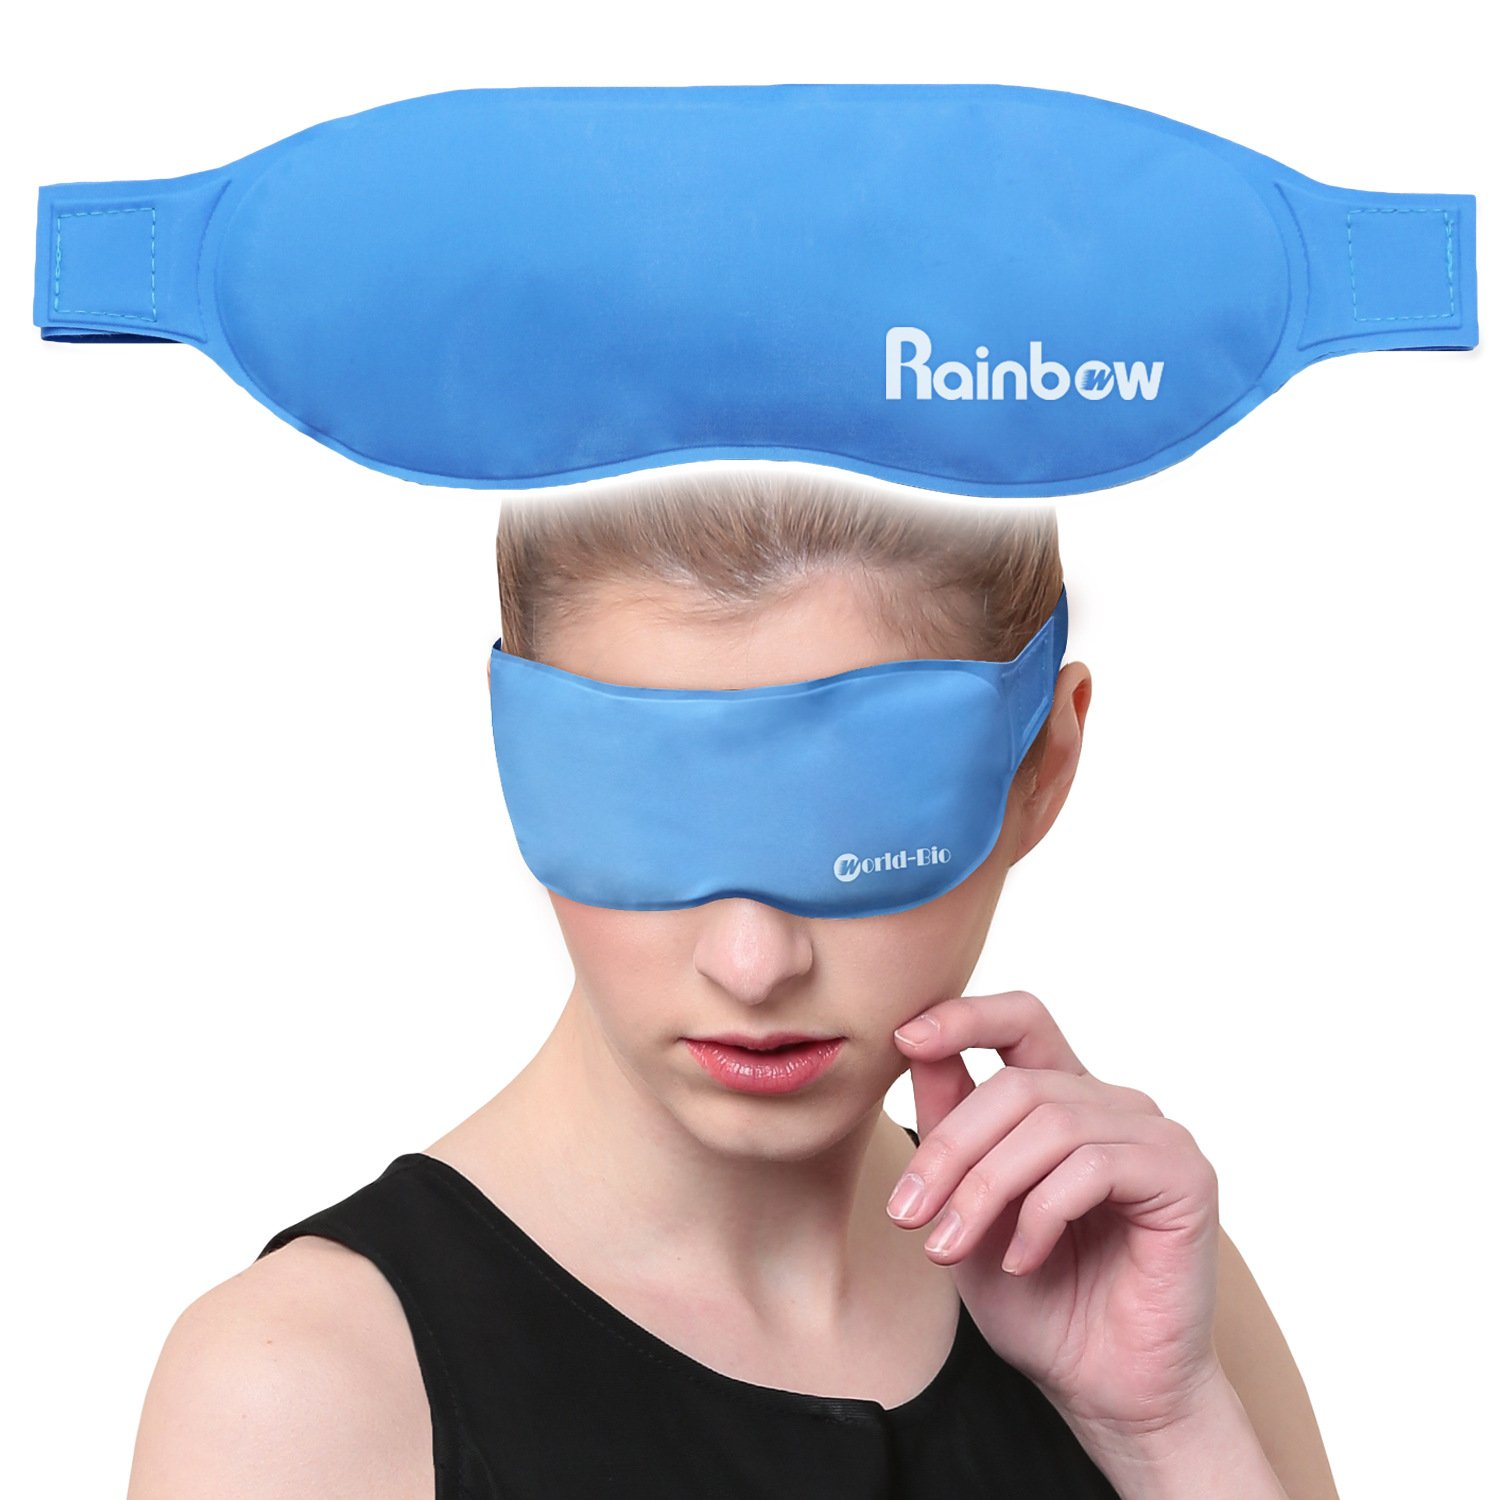 Zhongpai New Hot or Cold Medical Eye Mask - Reusable Compress for Puffy, Swollen, Dry or Itchy Eyes and Migraines - Microwave or Freeze by Zhongpai